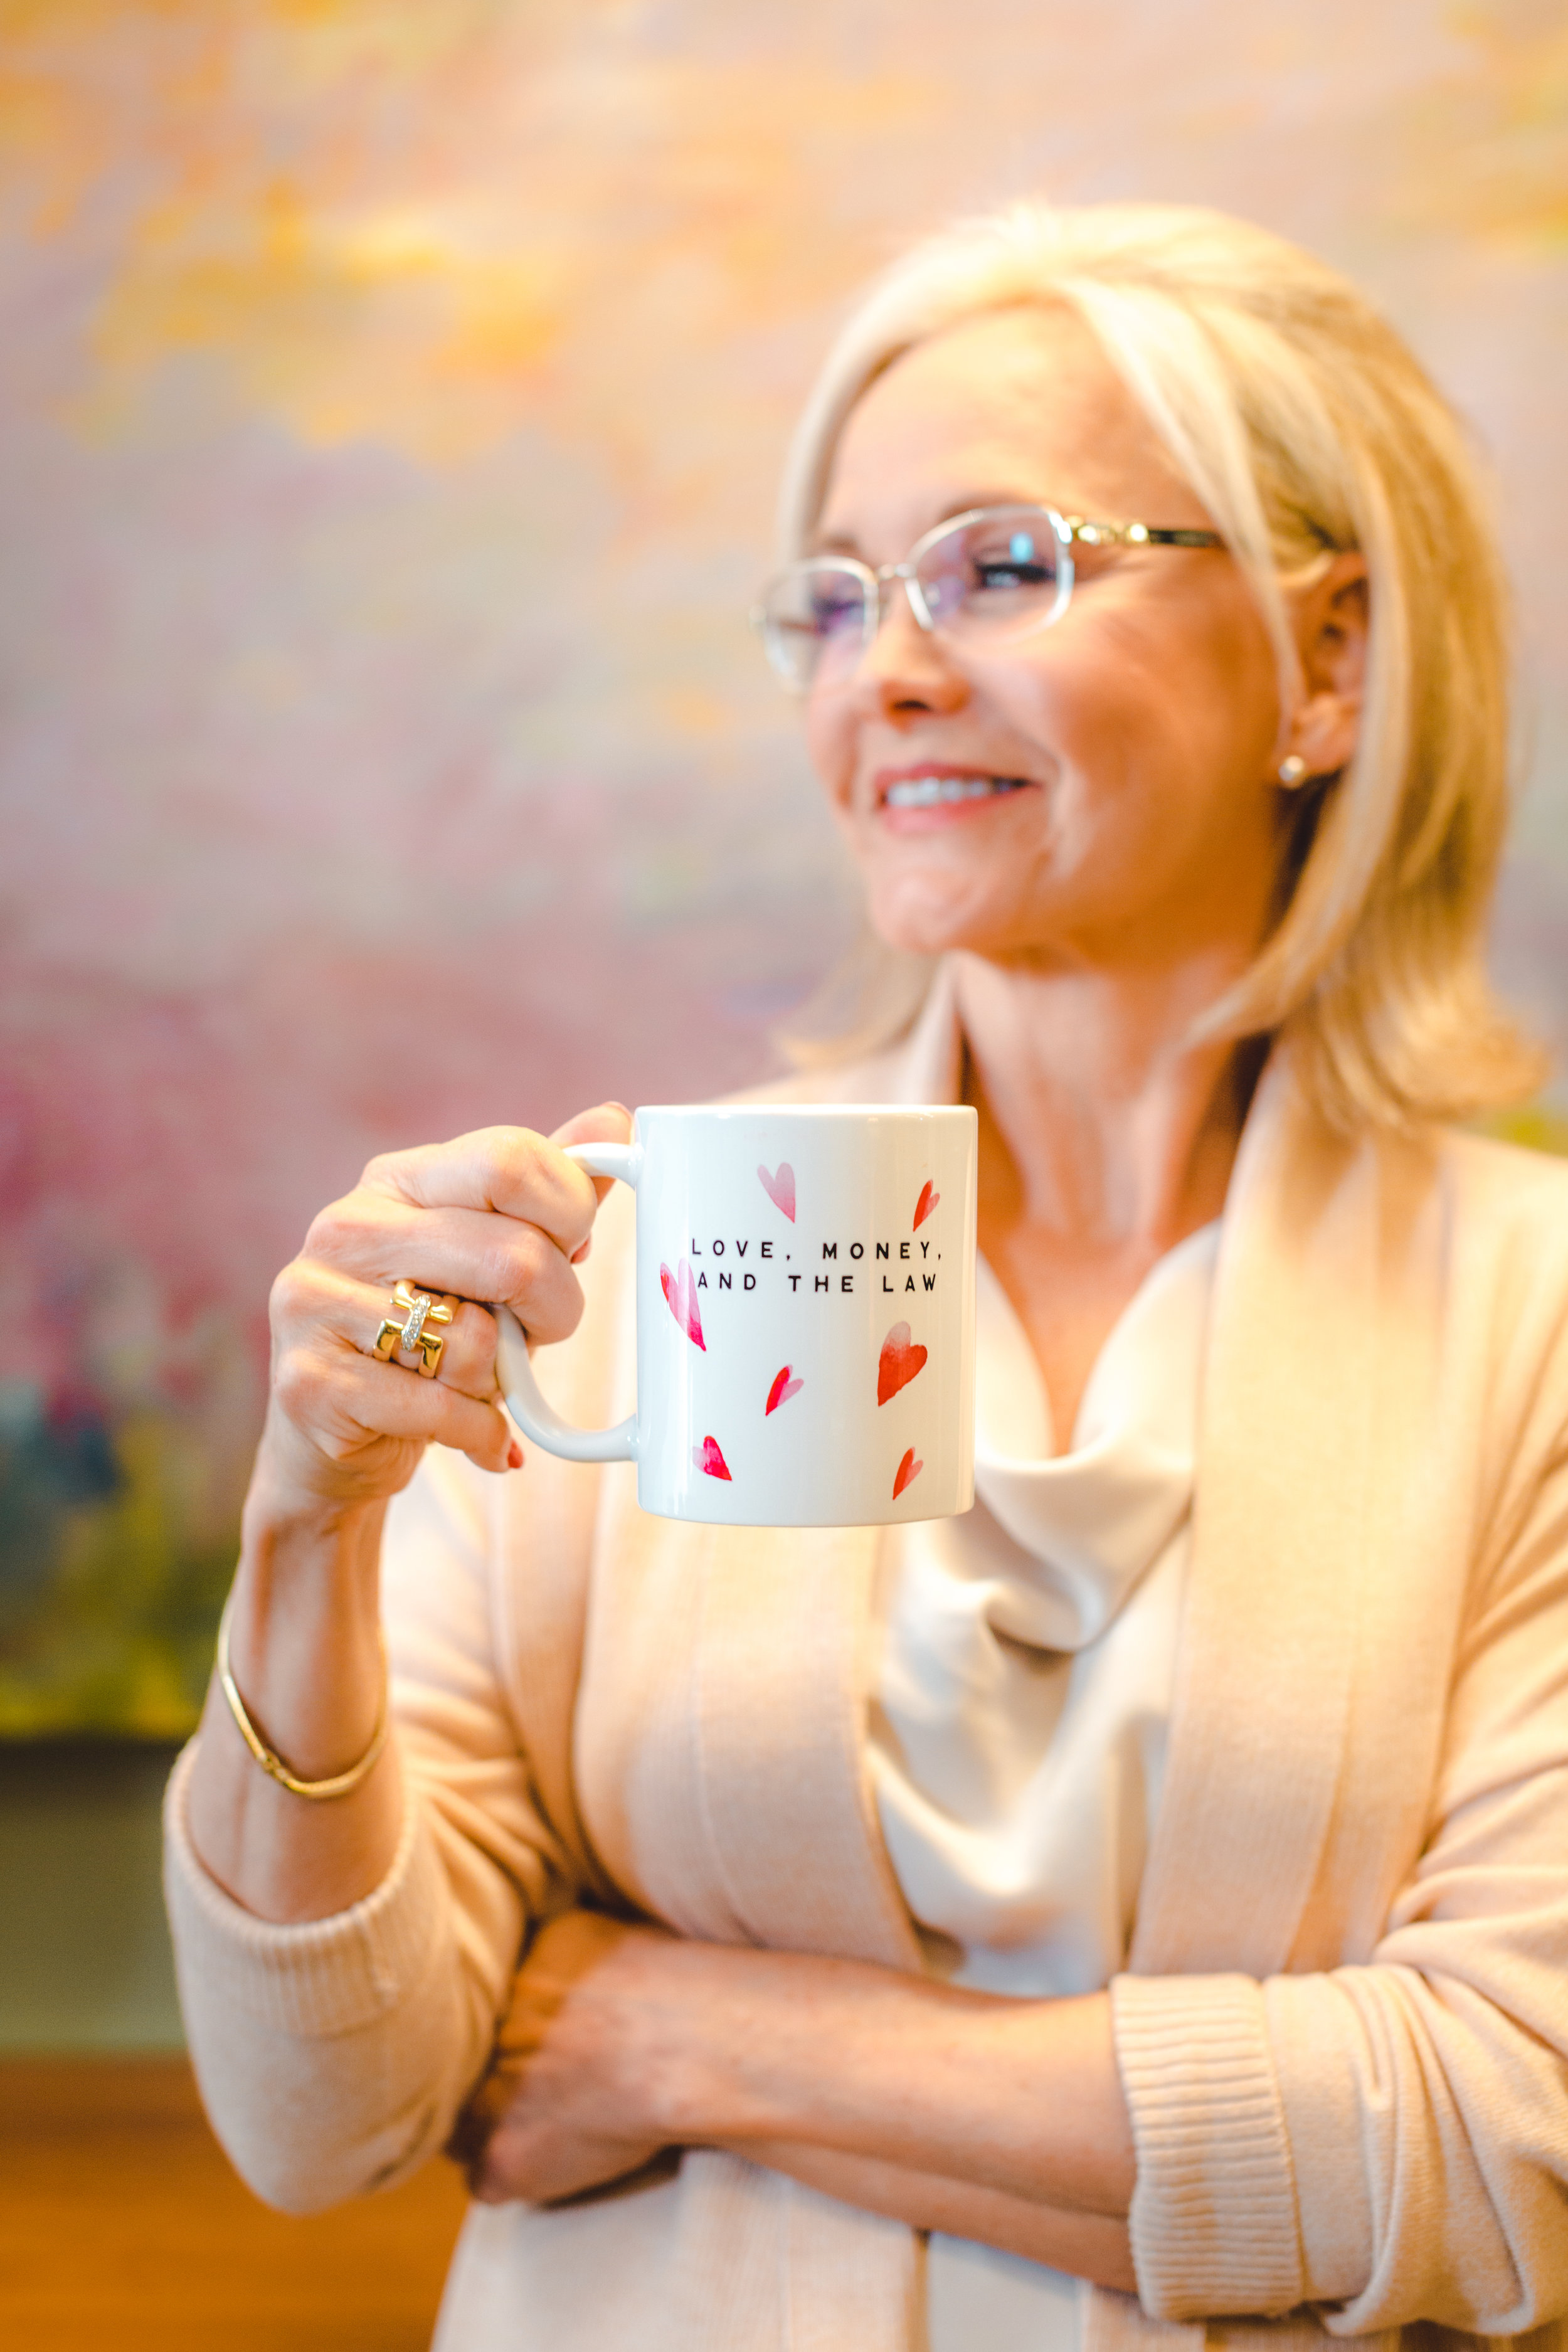 Family law attorney, and founder of Love, Money & the Law, Cindy Hide, drinking coffee inside her family law practice in Houston, Texas.